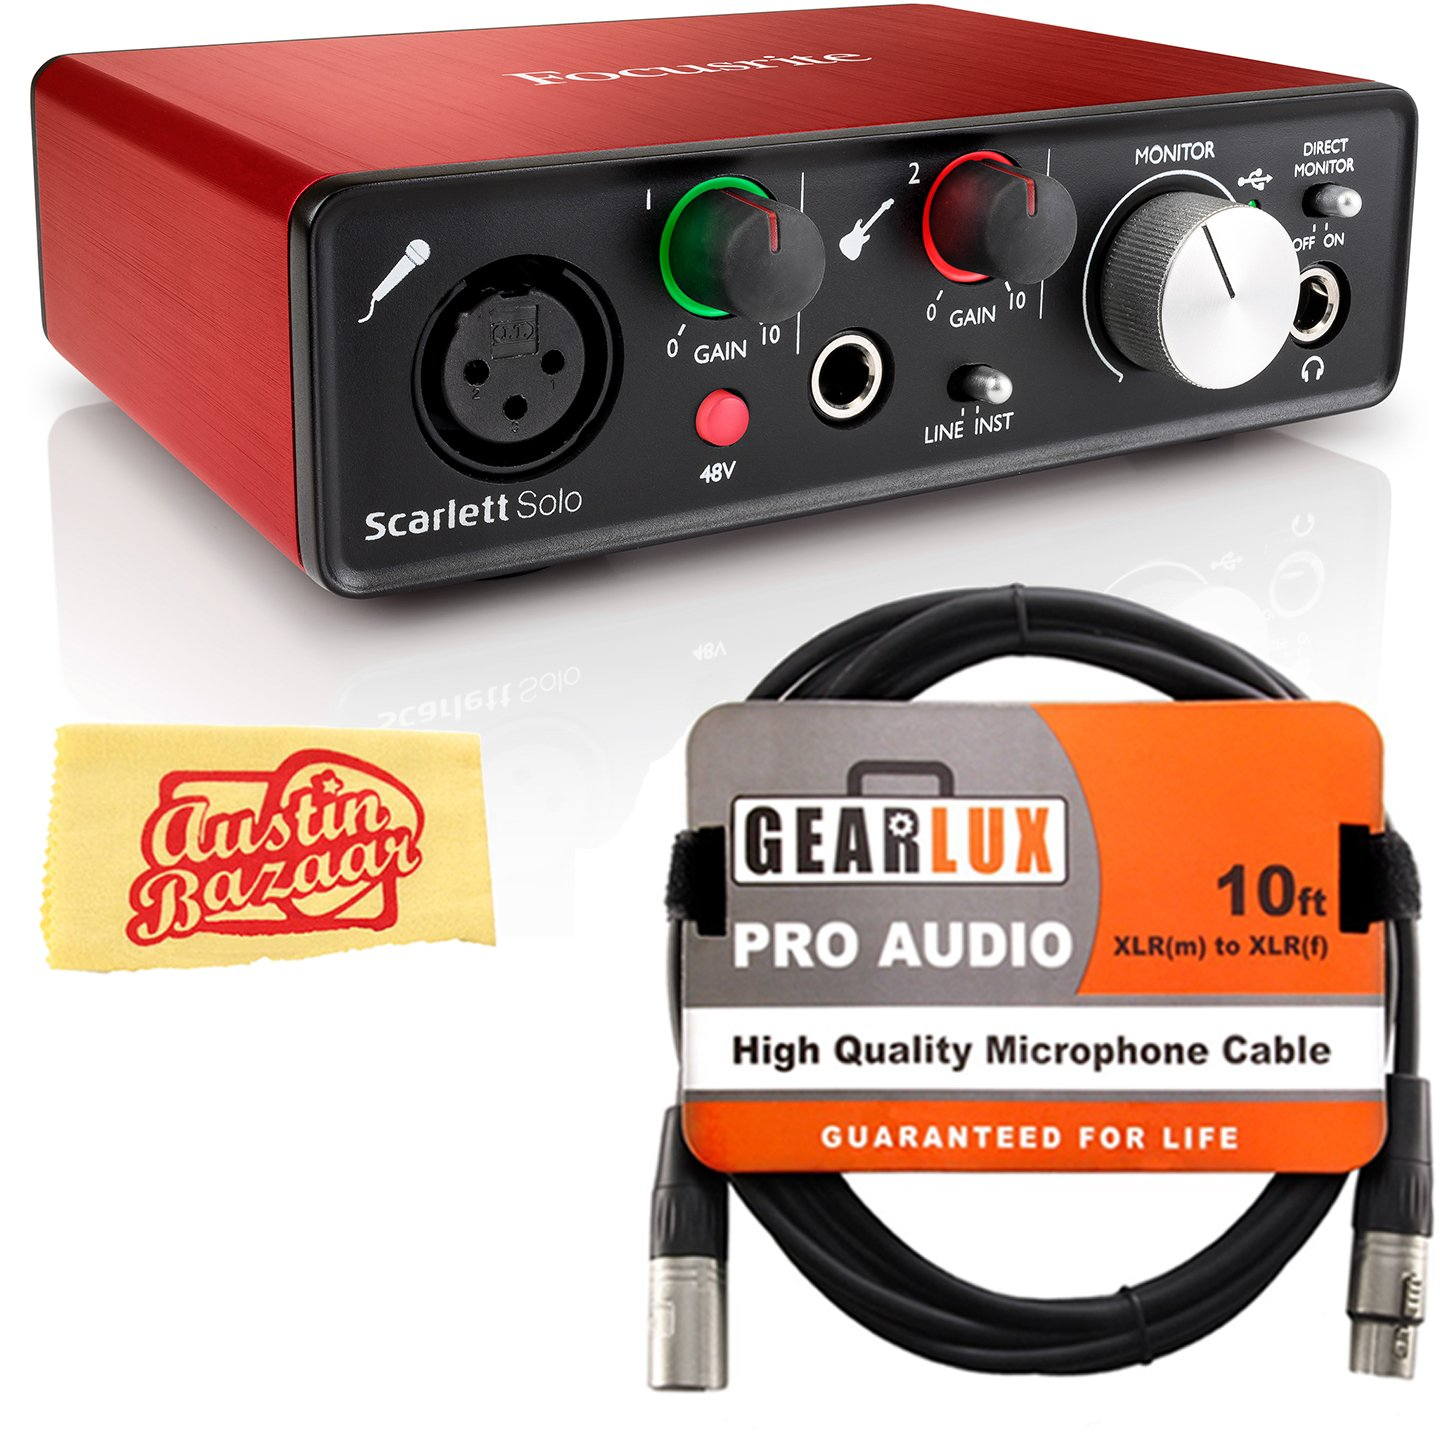 Focusrite Scarlett Solo USB Audio Interface Bundle with XLR Cable and Austin Bazaar Polishing Cloth by Focusrite